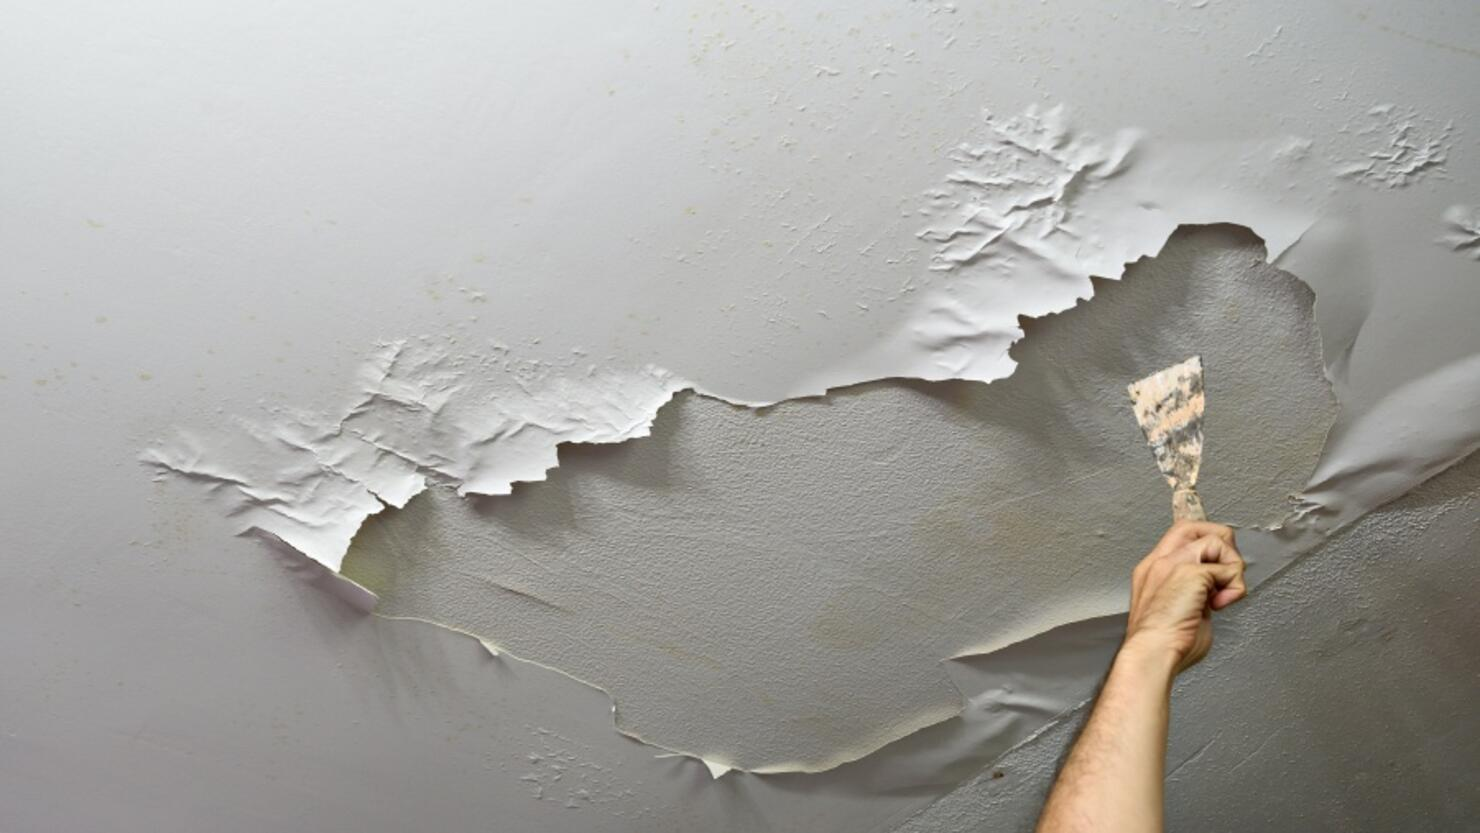 Man´s hand holding a spatula in his hand, pointing to the ceiling in which the paint has been peeled off by moisture. Plumbing work at home